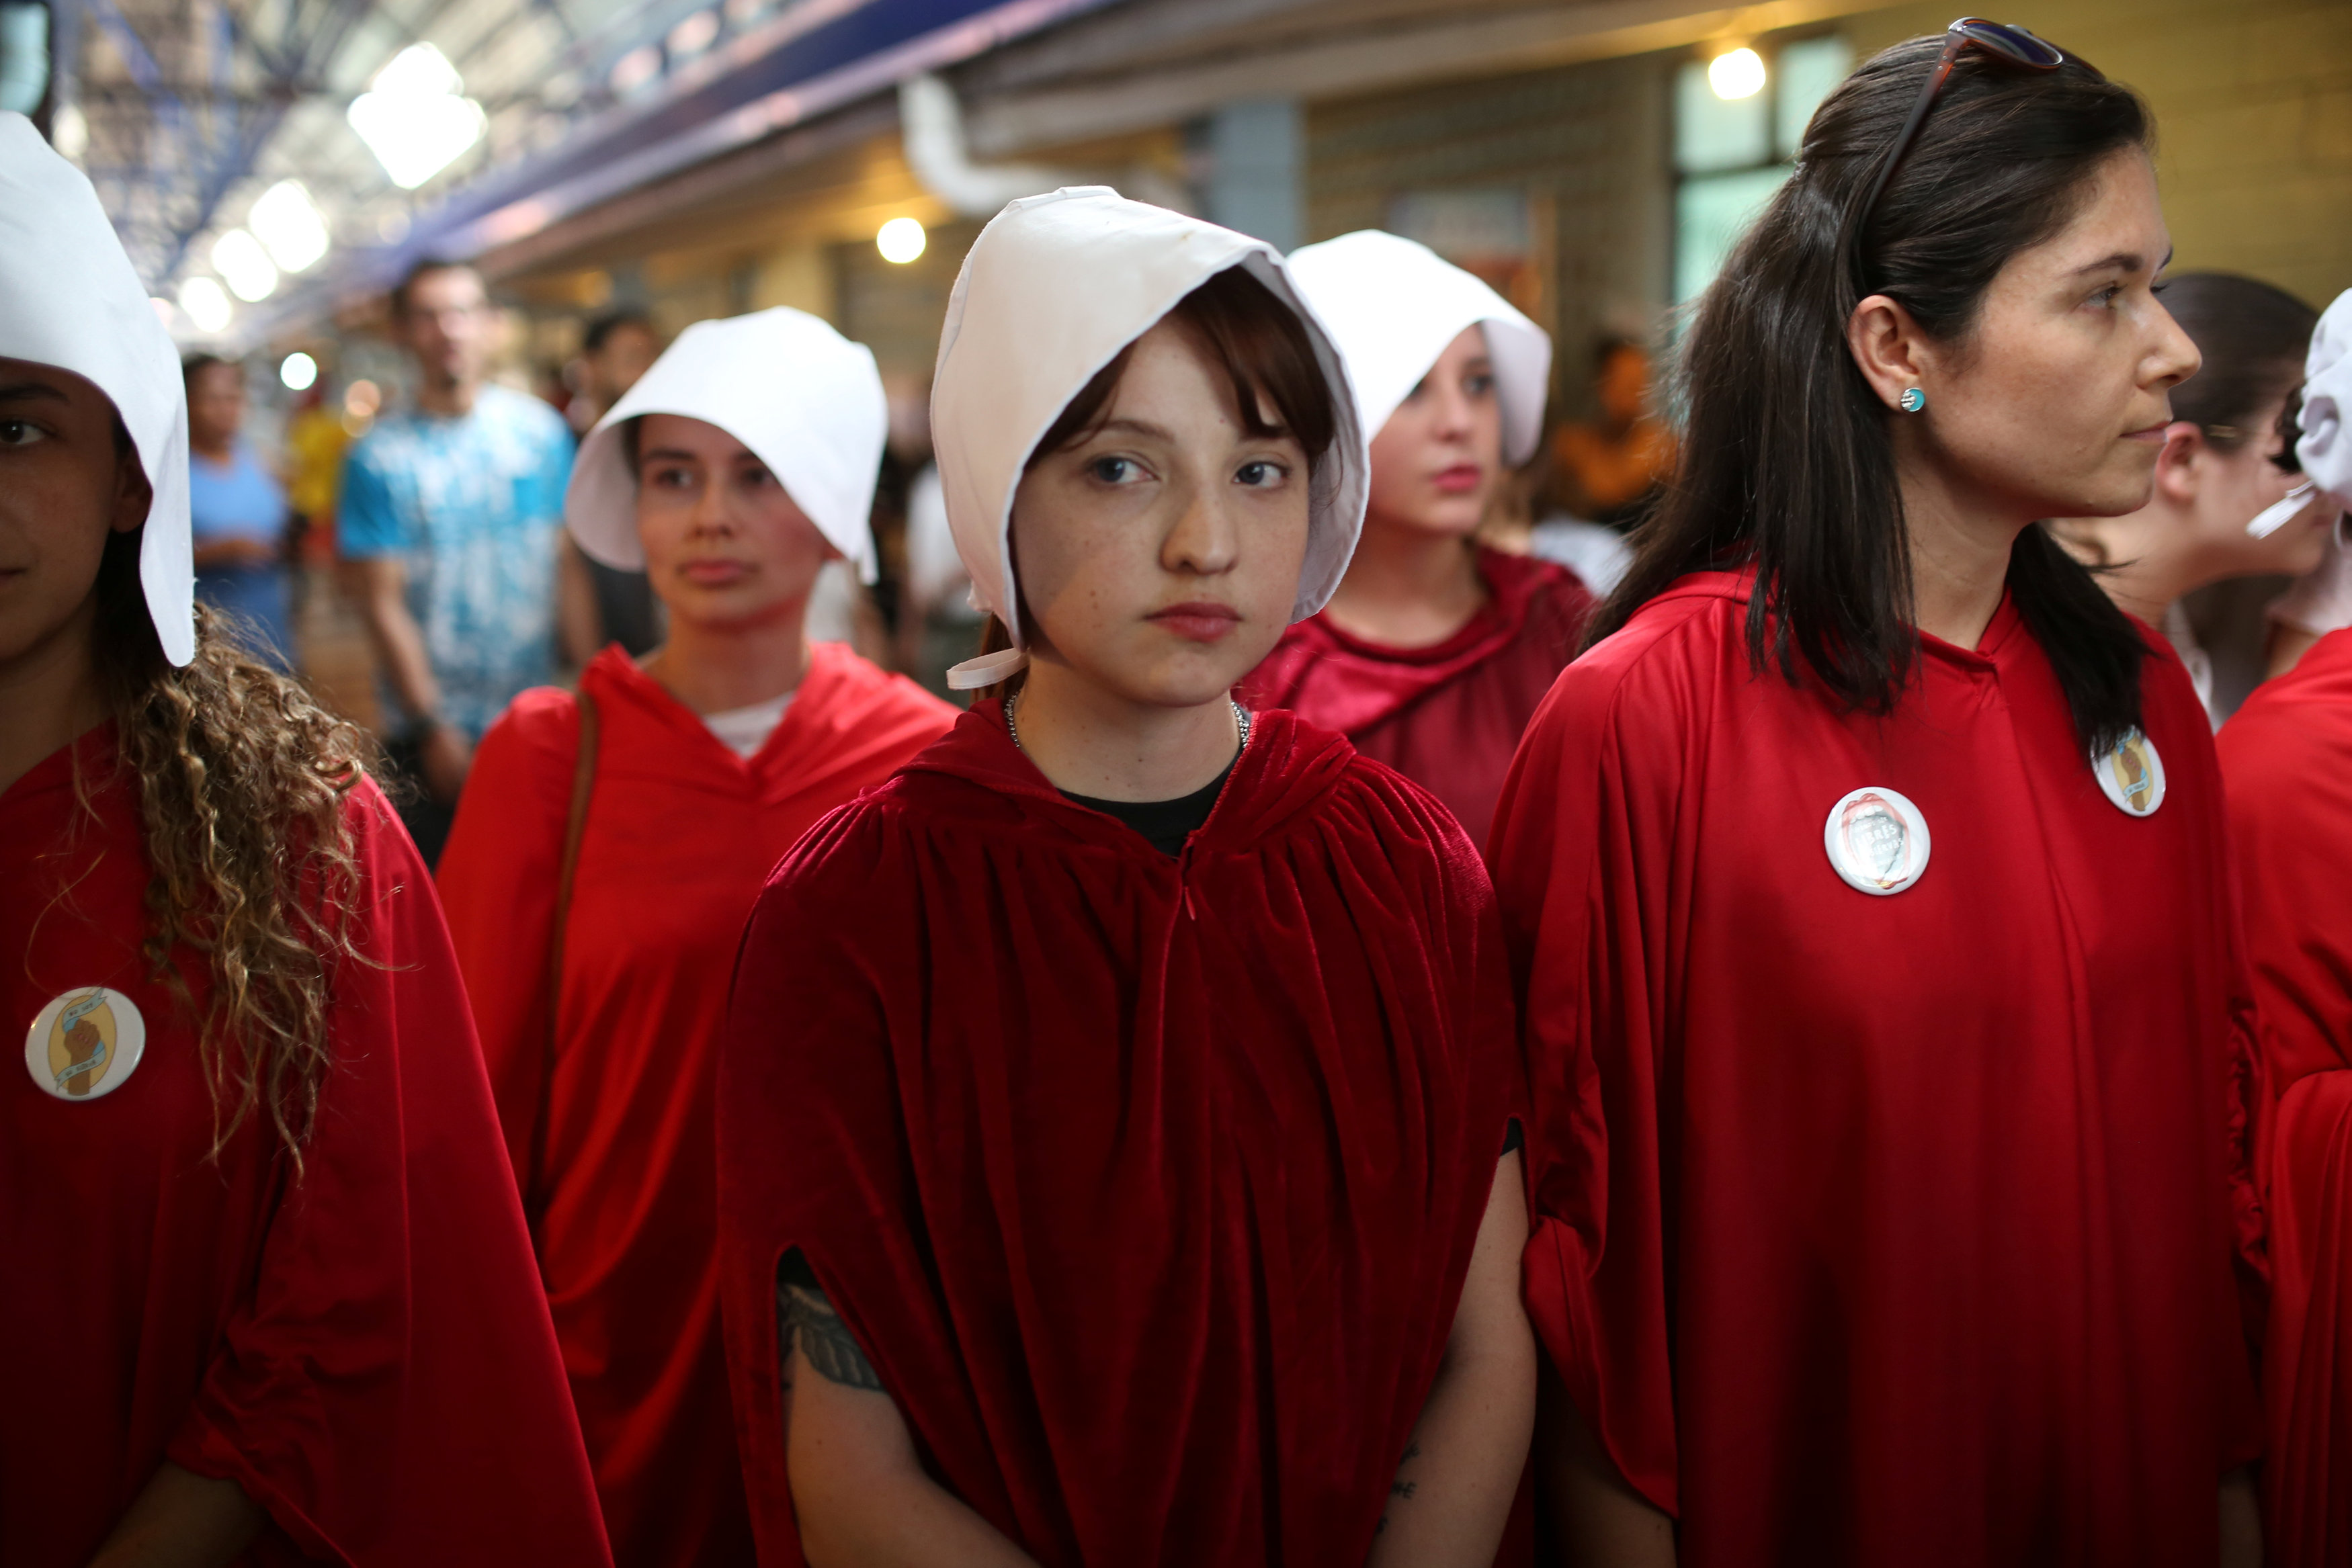 Activists dressed in costumes from The Handmaid's Tale series wait for the presidential candidate Carlos Alvarado Quesada at a polling station in San Jose, Costa Rica on April 1, 2018. REUTERS/Jose Cabezas